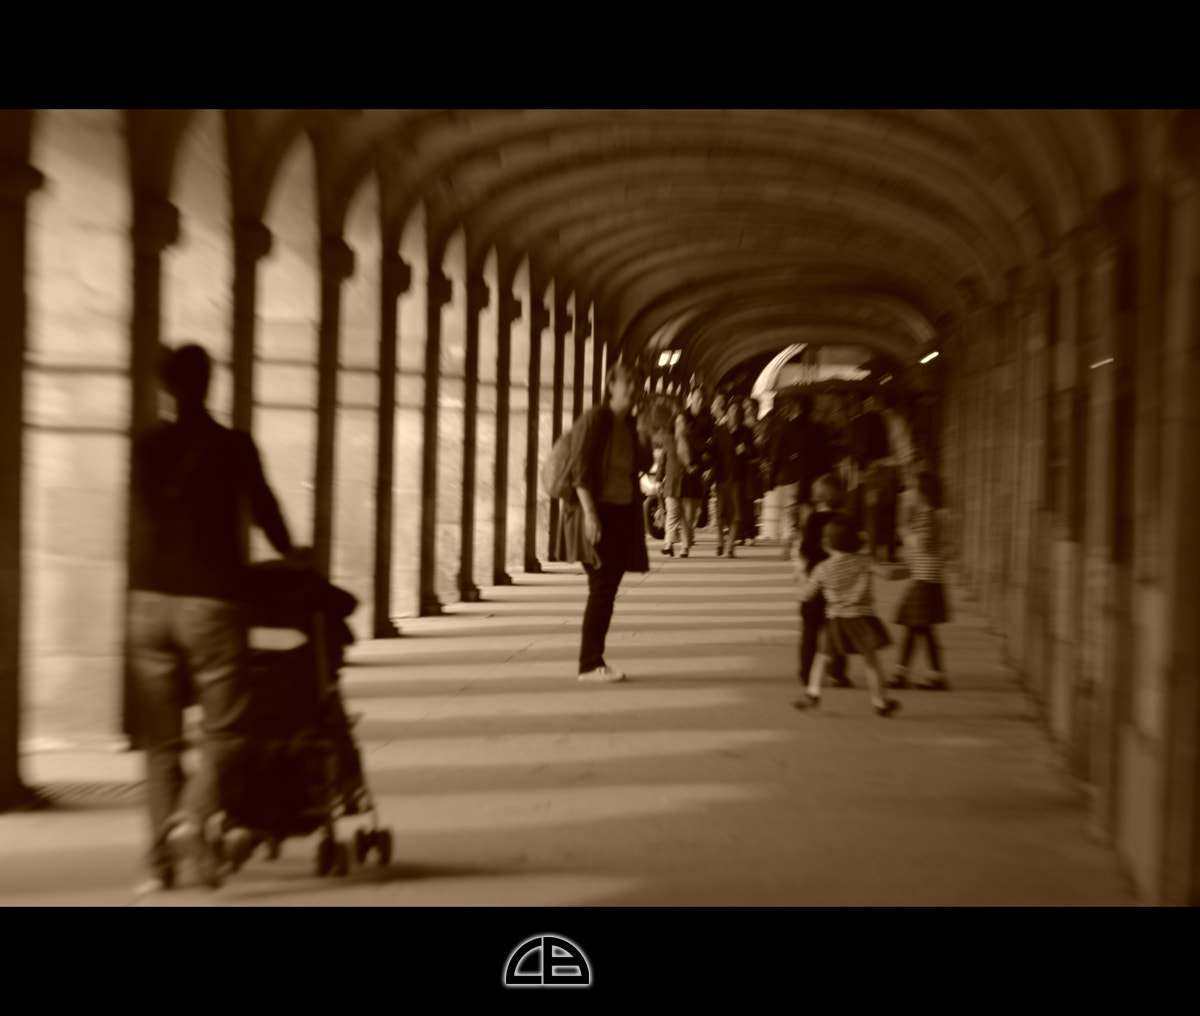 Photograph One day in Paris by Luc B. on 500px